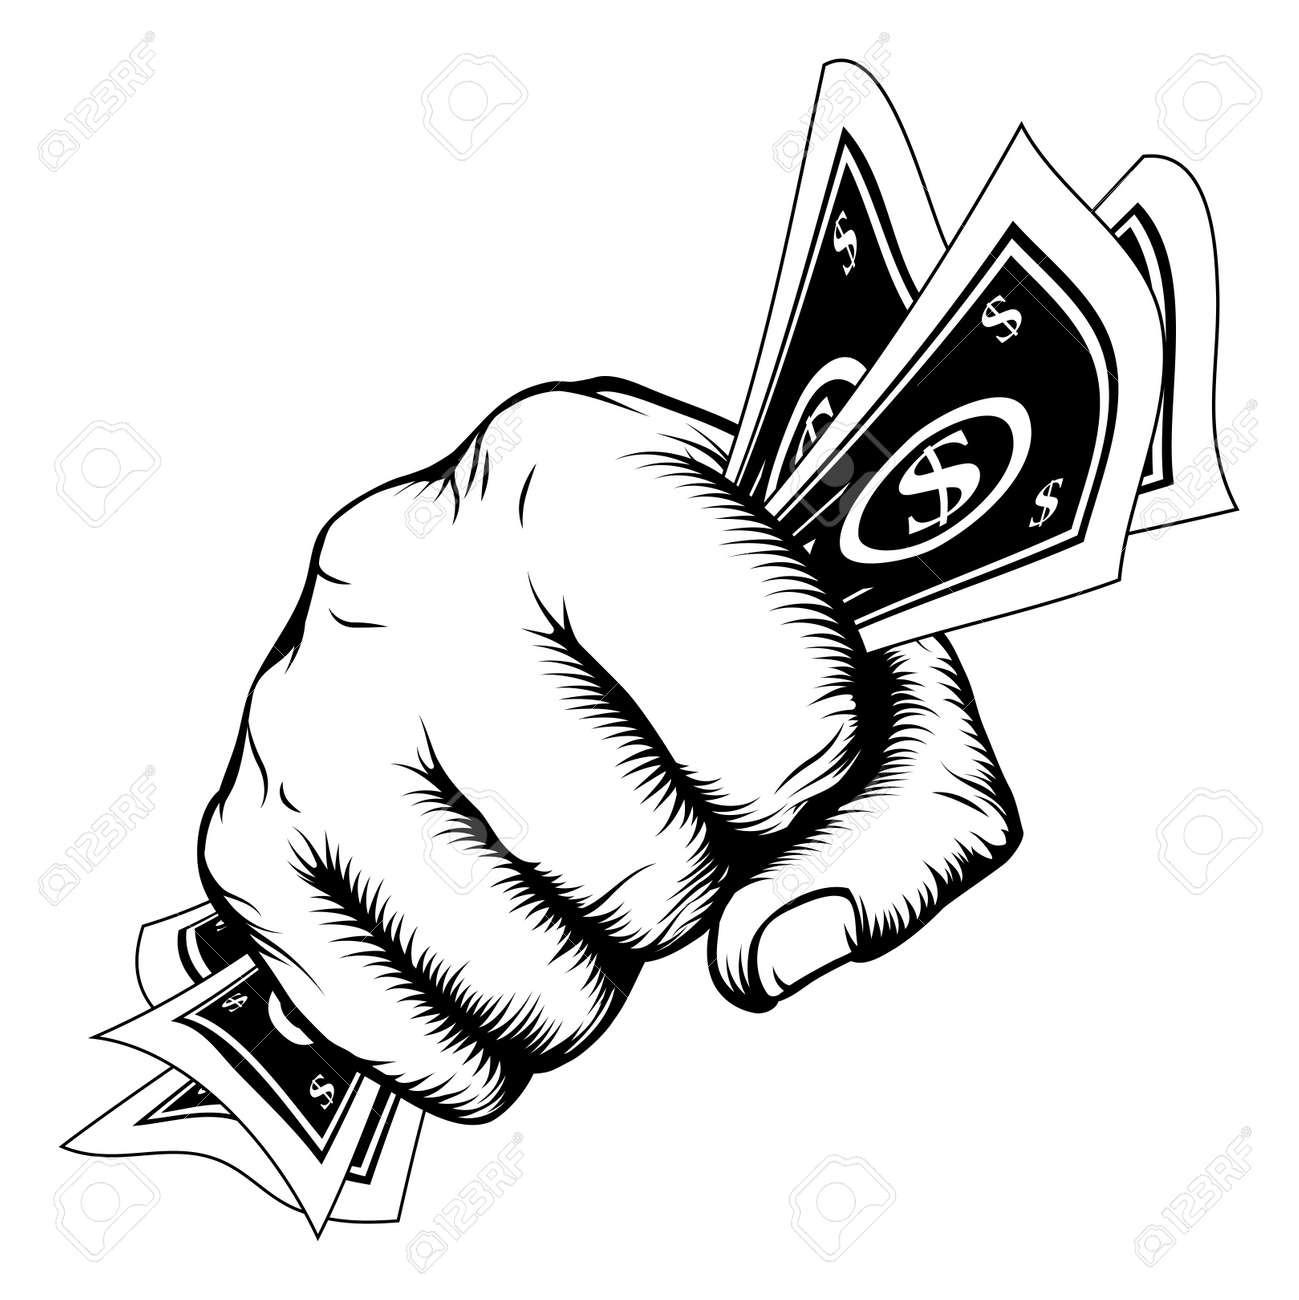 Hand In A Fist With Cash Dollar Bills Illustration In Woodcut Retro Style.  Imagens